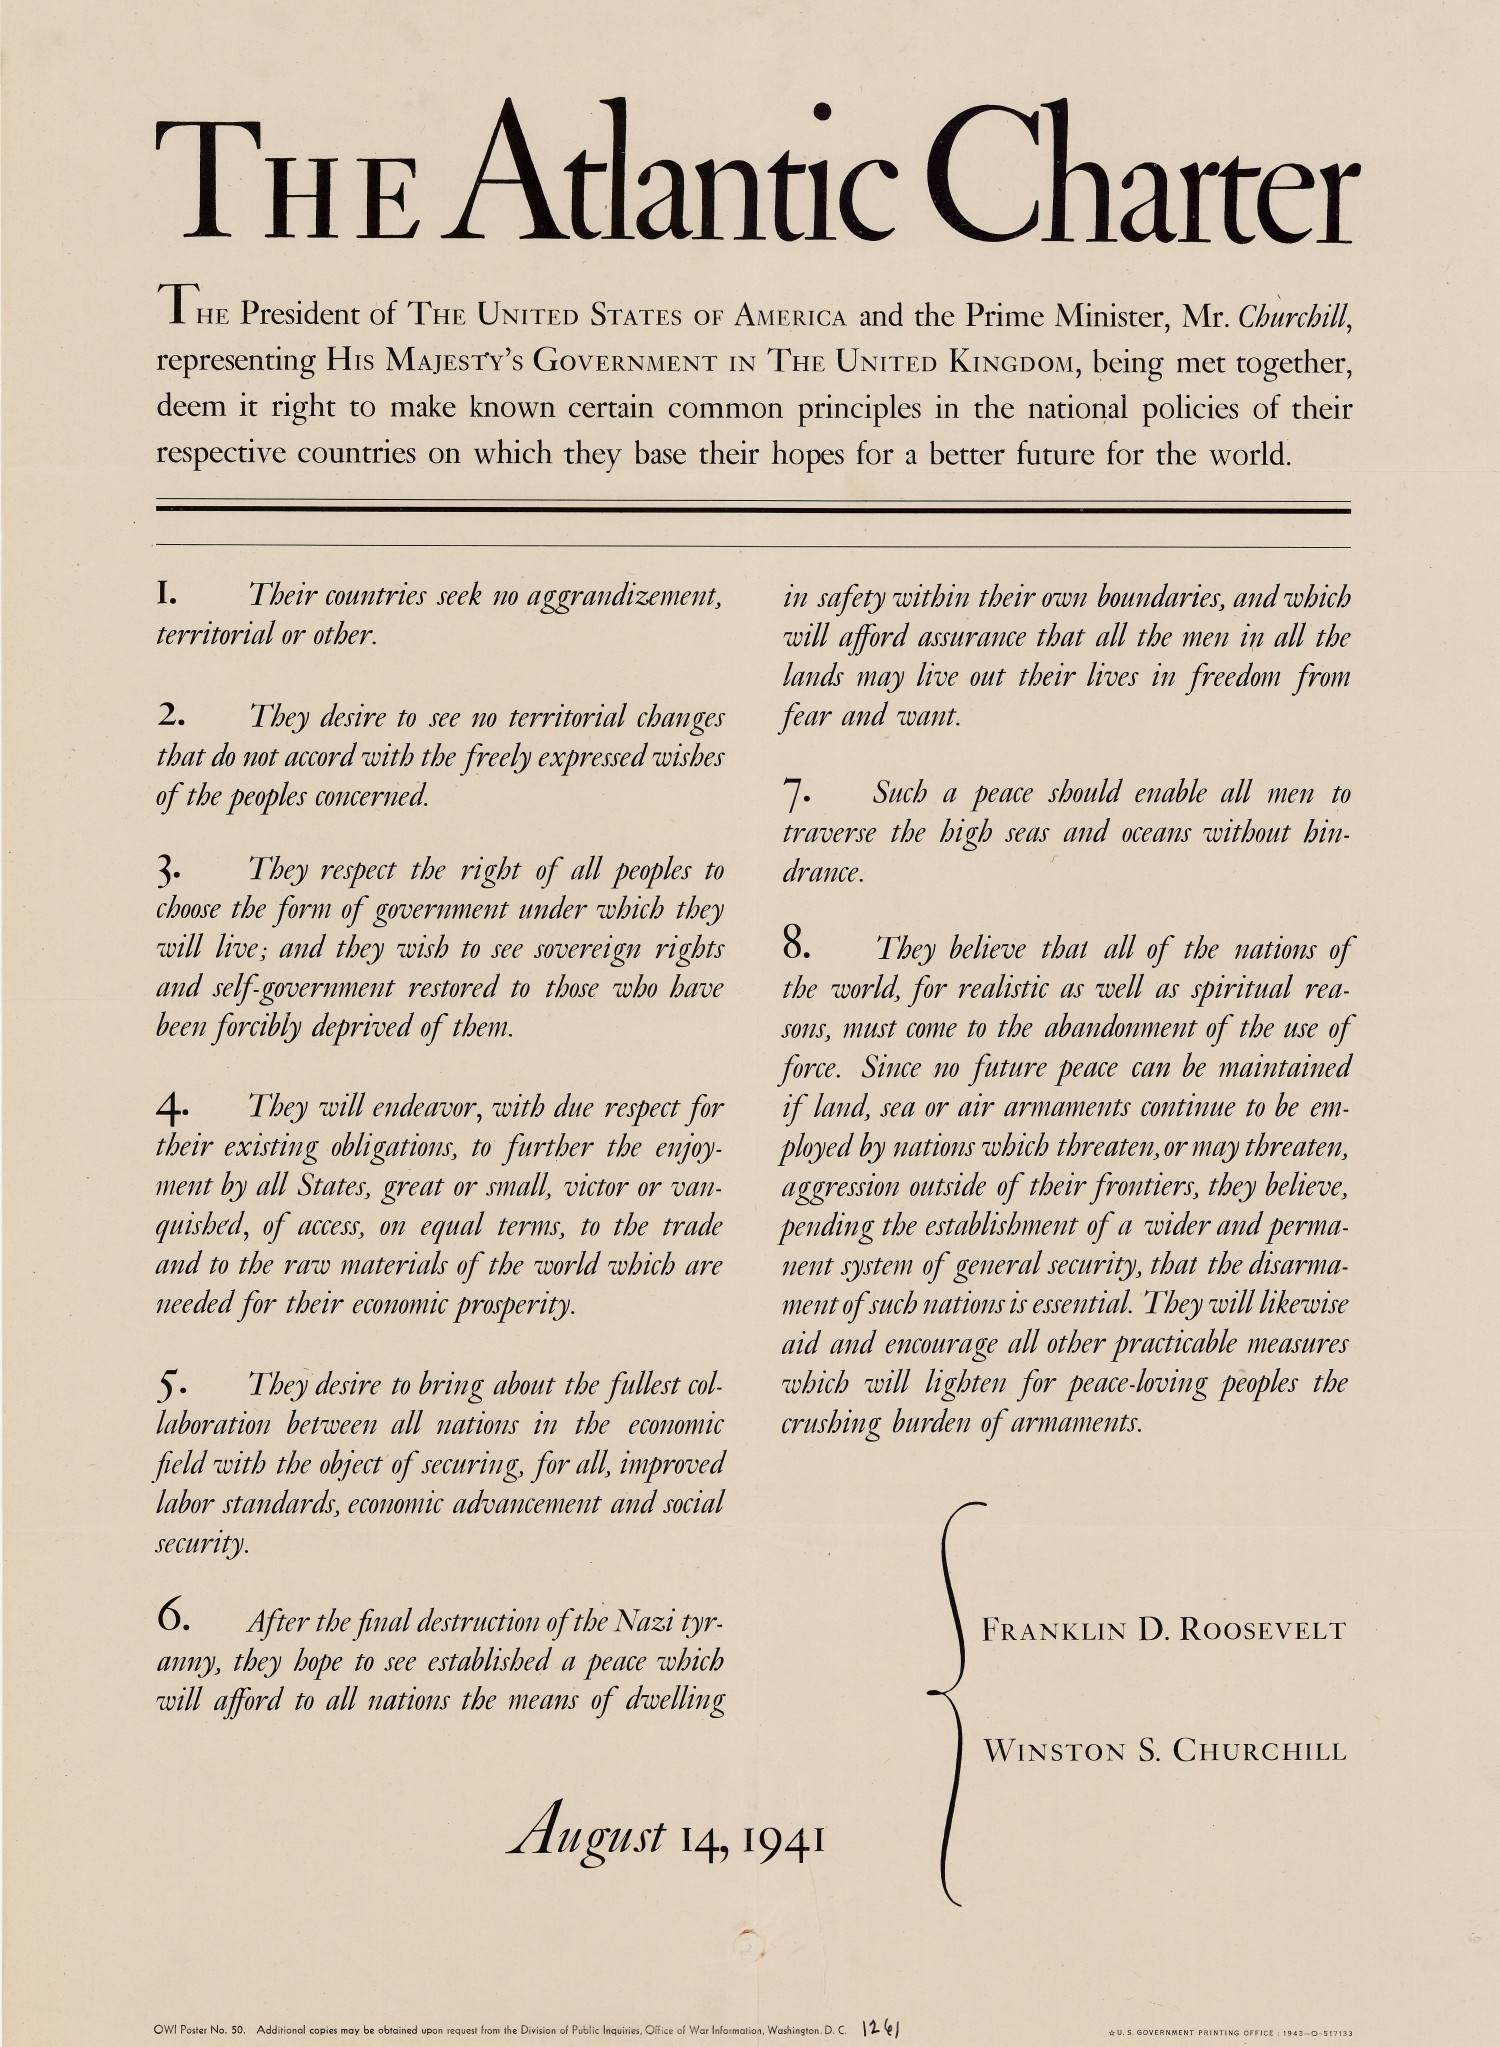 """roosevelt and churchill inspire the nation essay Editor's essay – consistency of principle: a churchillian characteristic  """"for  instance, so few have grasped that churchill saw in socialism, national  socialism and communism aspects of the  much of it was inspired by larry  arnn:  much more than roosevelt, churchill thought about governance among  free peoples."""